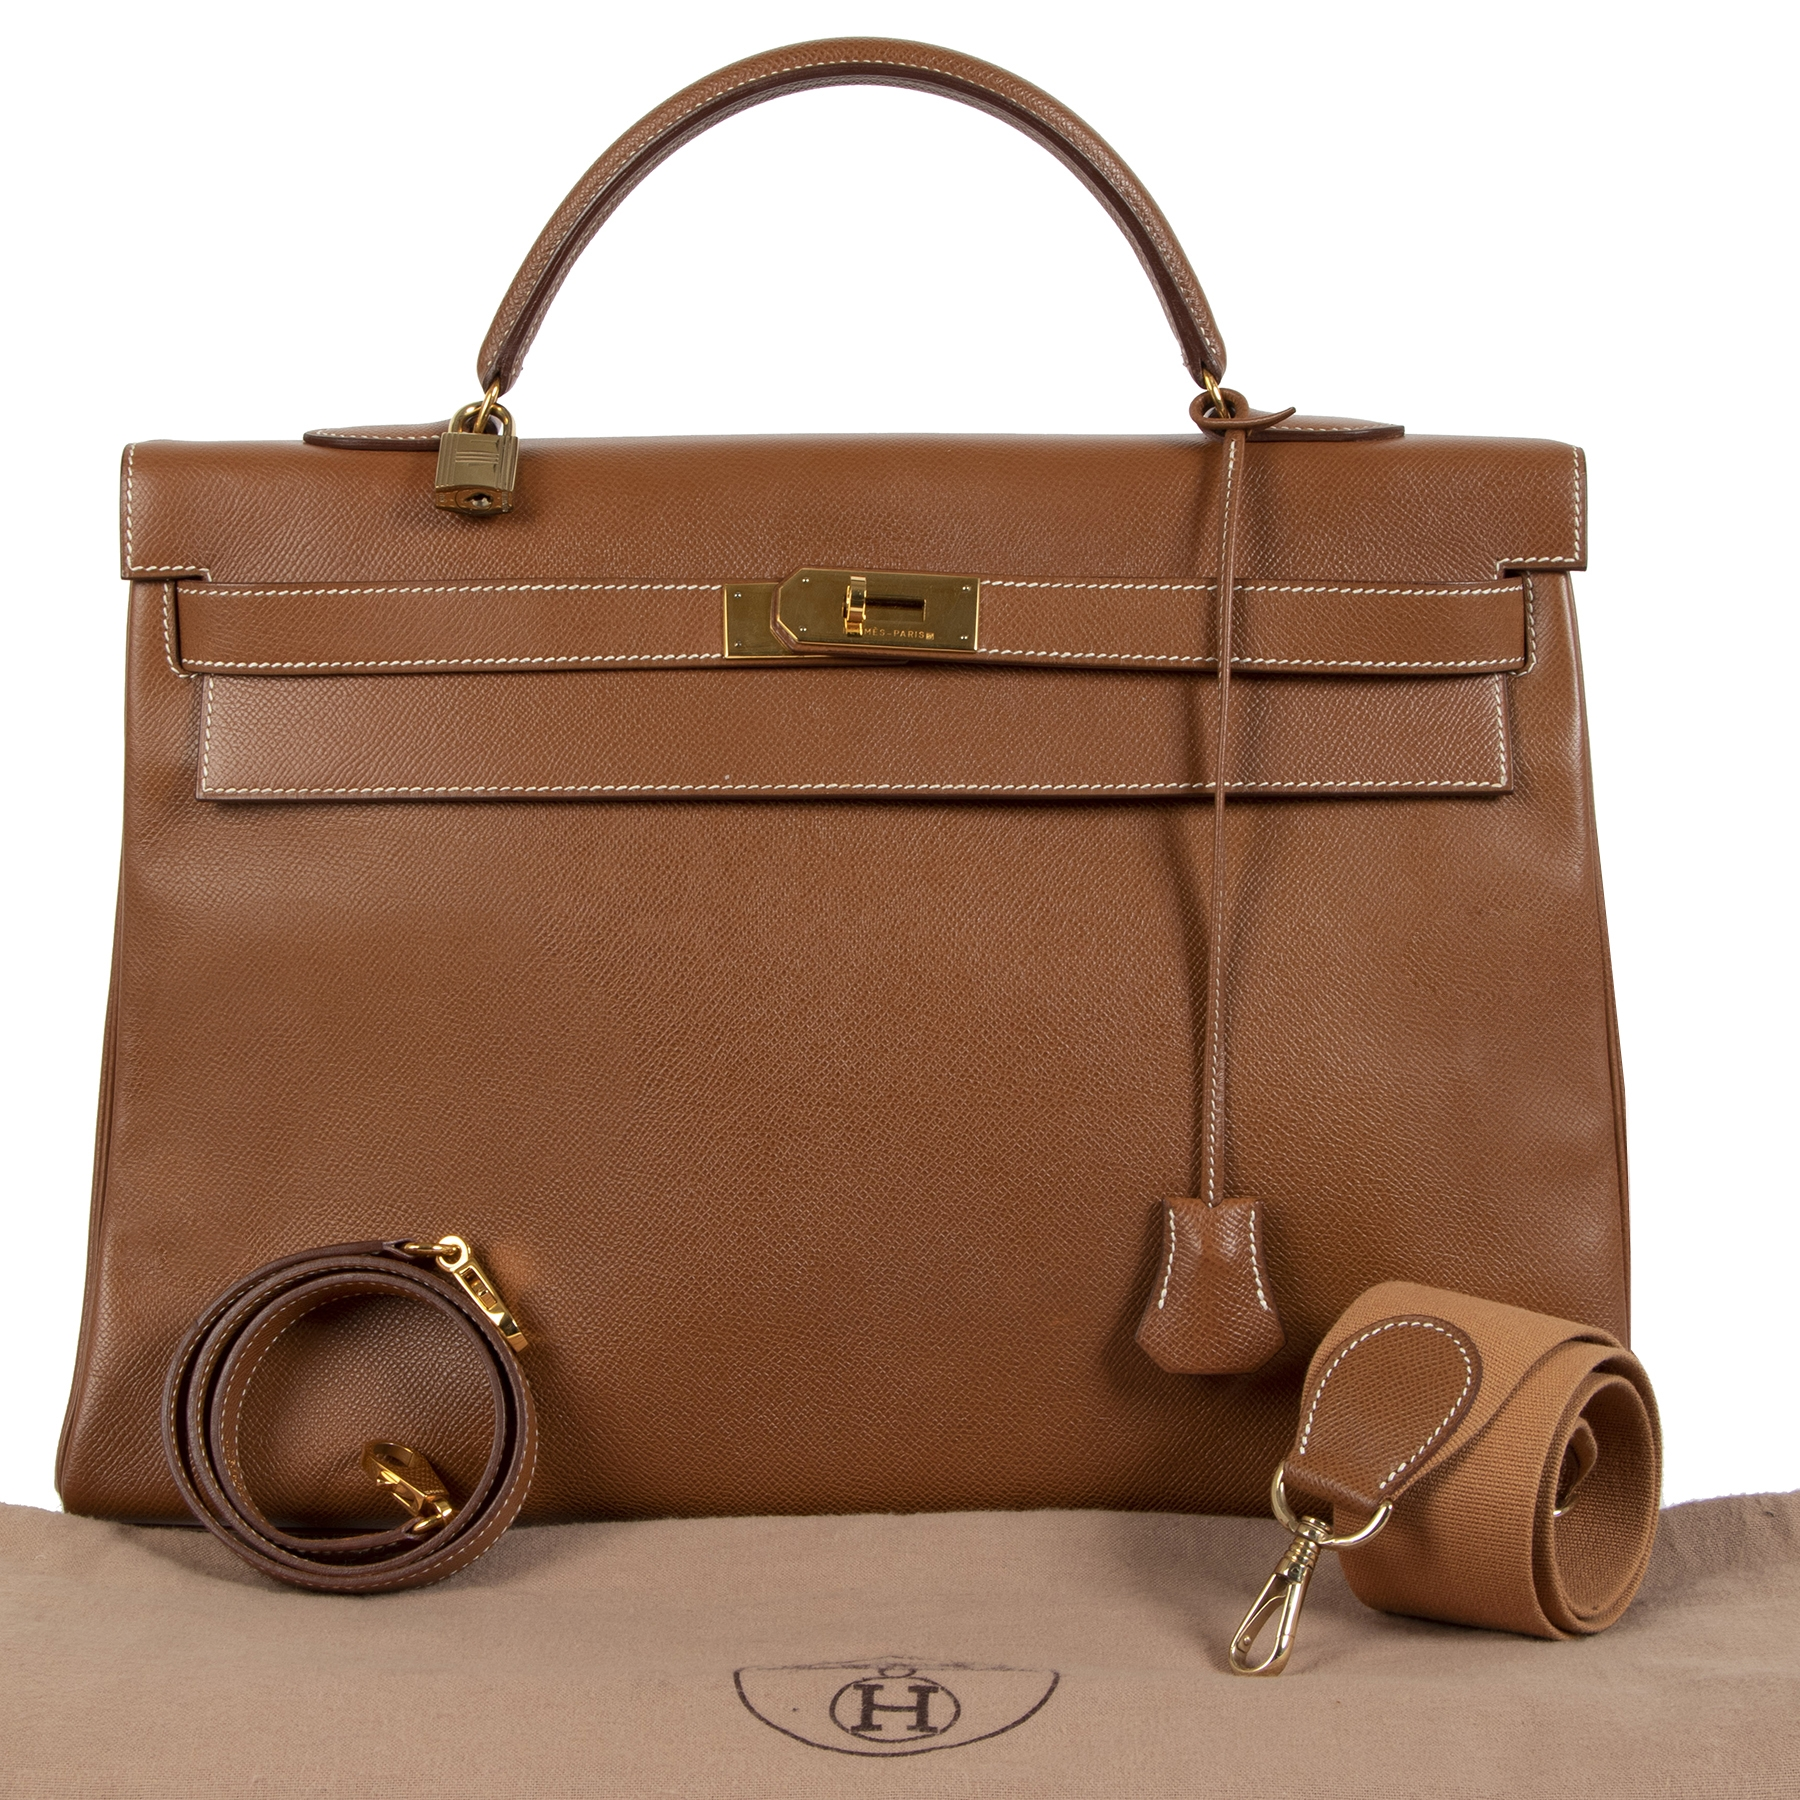 Authentieke tweedehands vintage Hermès Kelly 40 Gold Courchevel koop online webshop LabelLOV